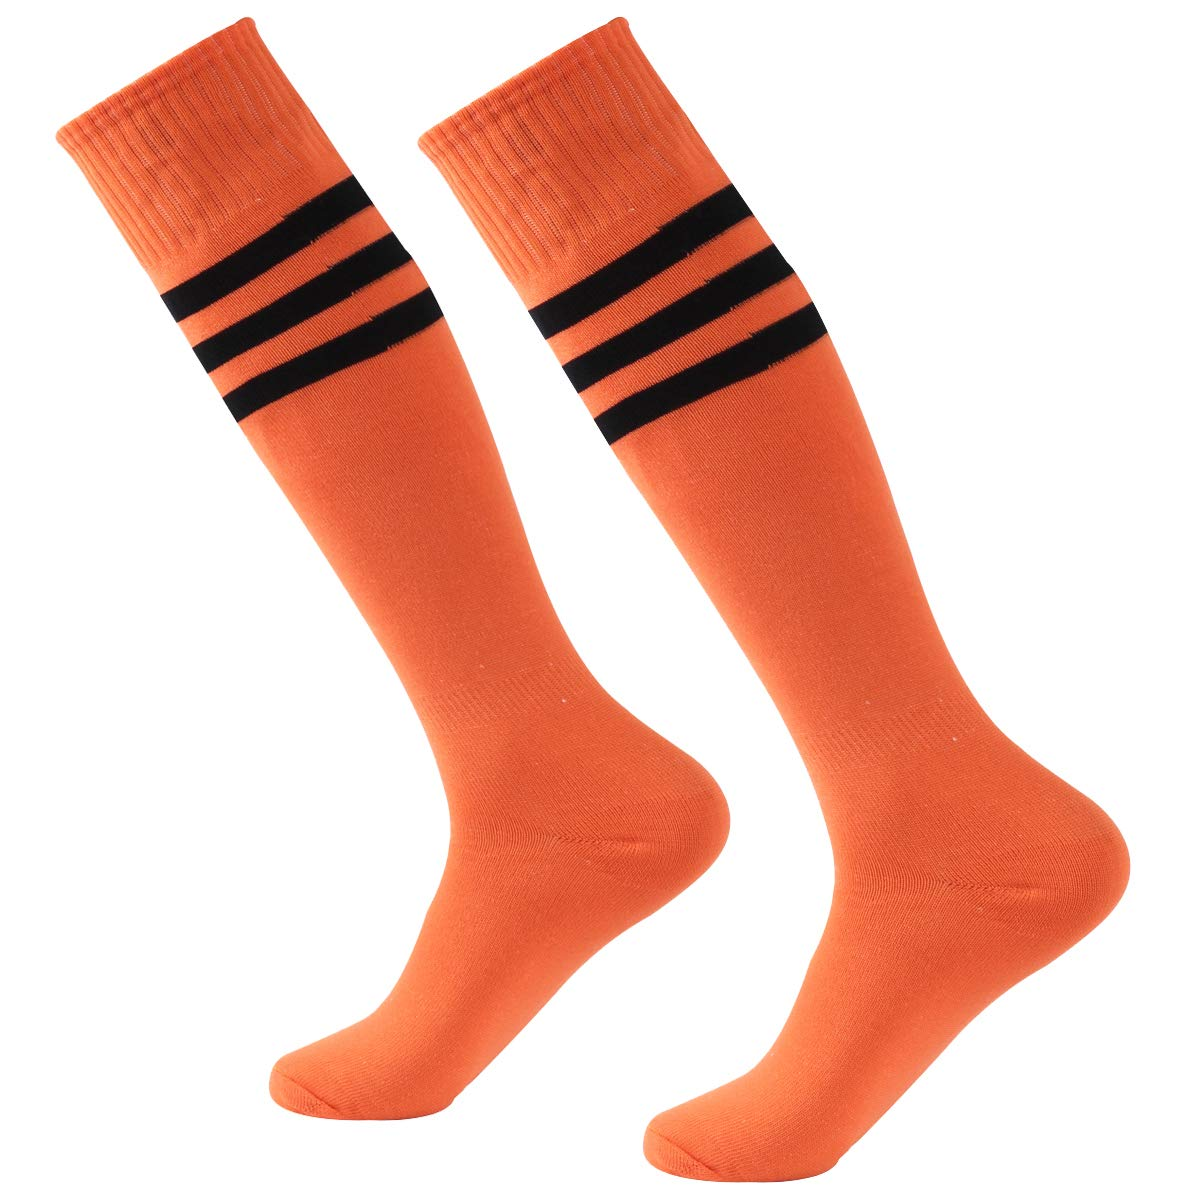 Baseball Socks,Fasoar Mens Womens Youth Over the Calf Rugby Boots Soccer Socks 2 Pairs Orange by Fasoar